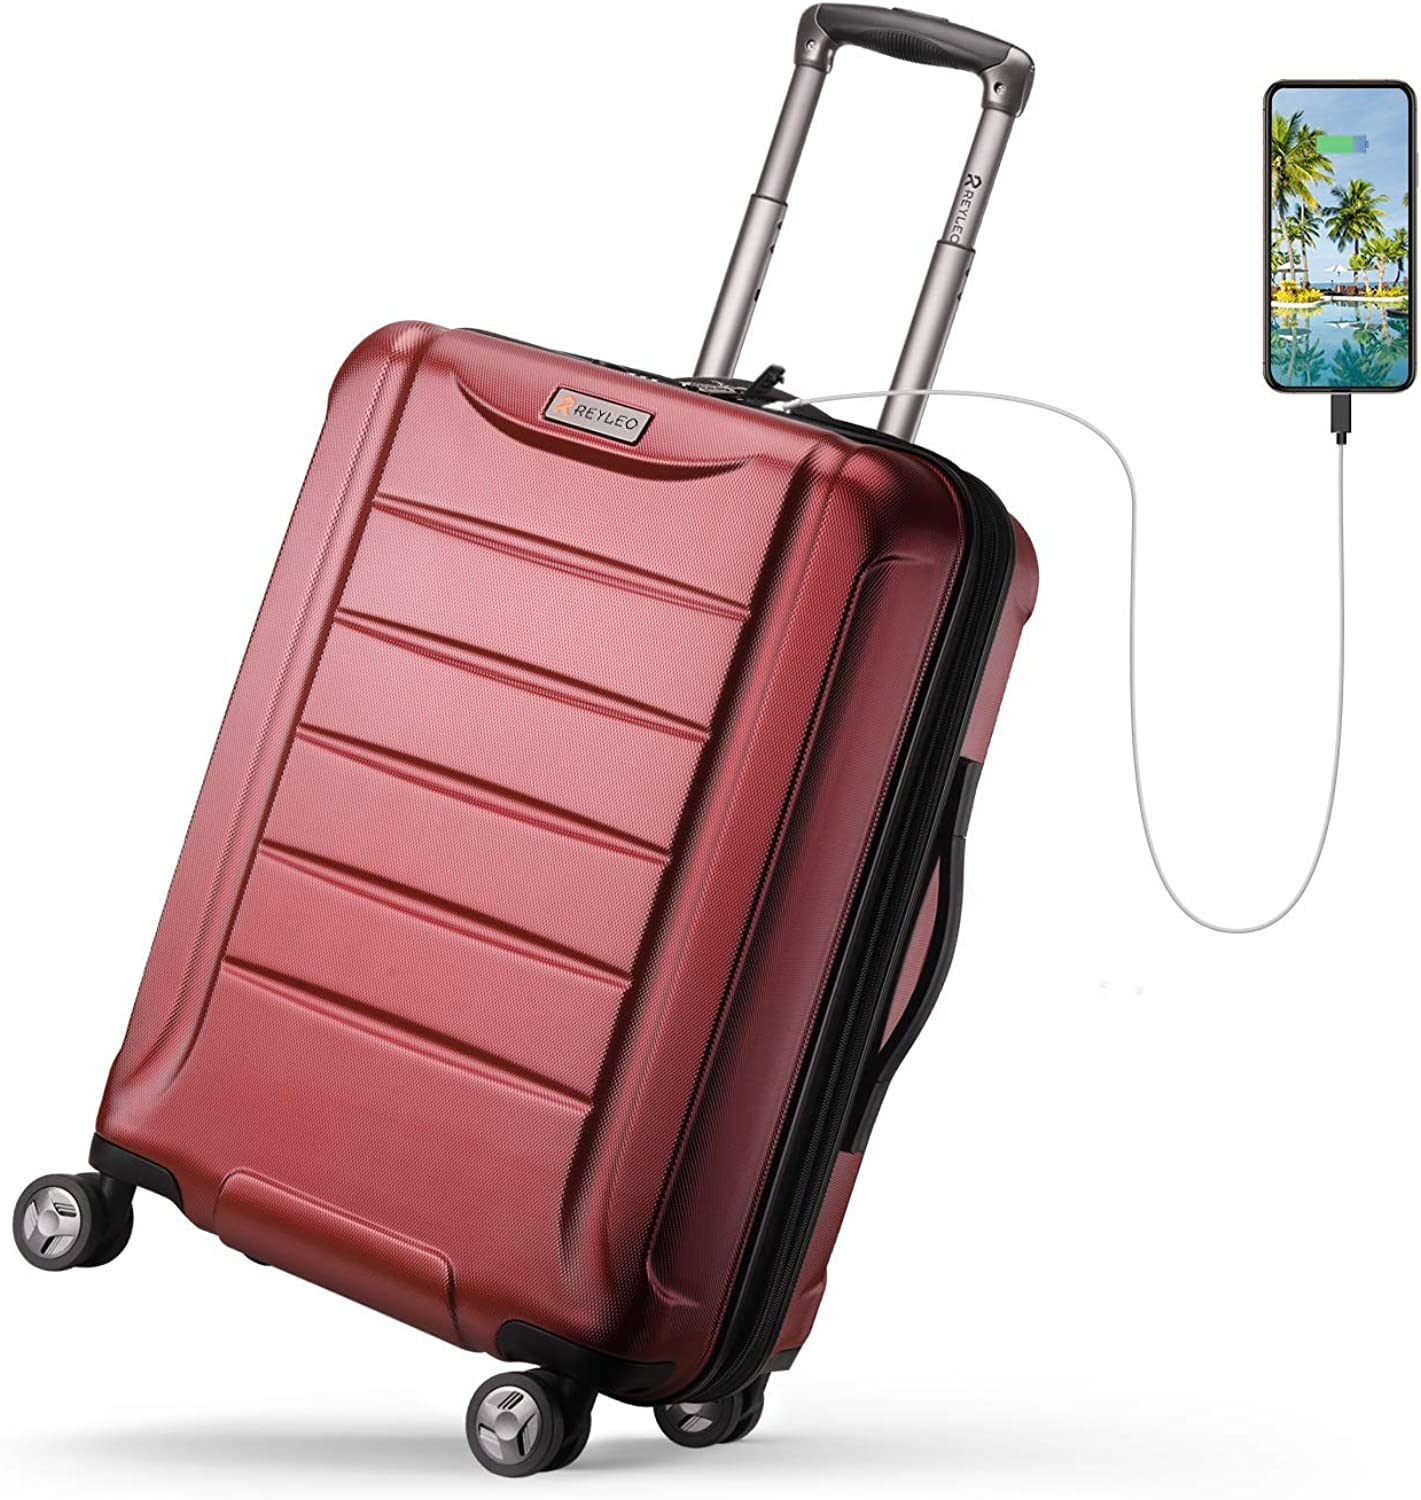 REYLEO Expandable Luggage 21 Inch PC Carry on Luggage Travel Suitcase with USB Charging Port Built-in TSA Lock 8 Silent Spinner Wheels Side Handle